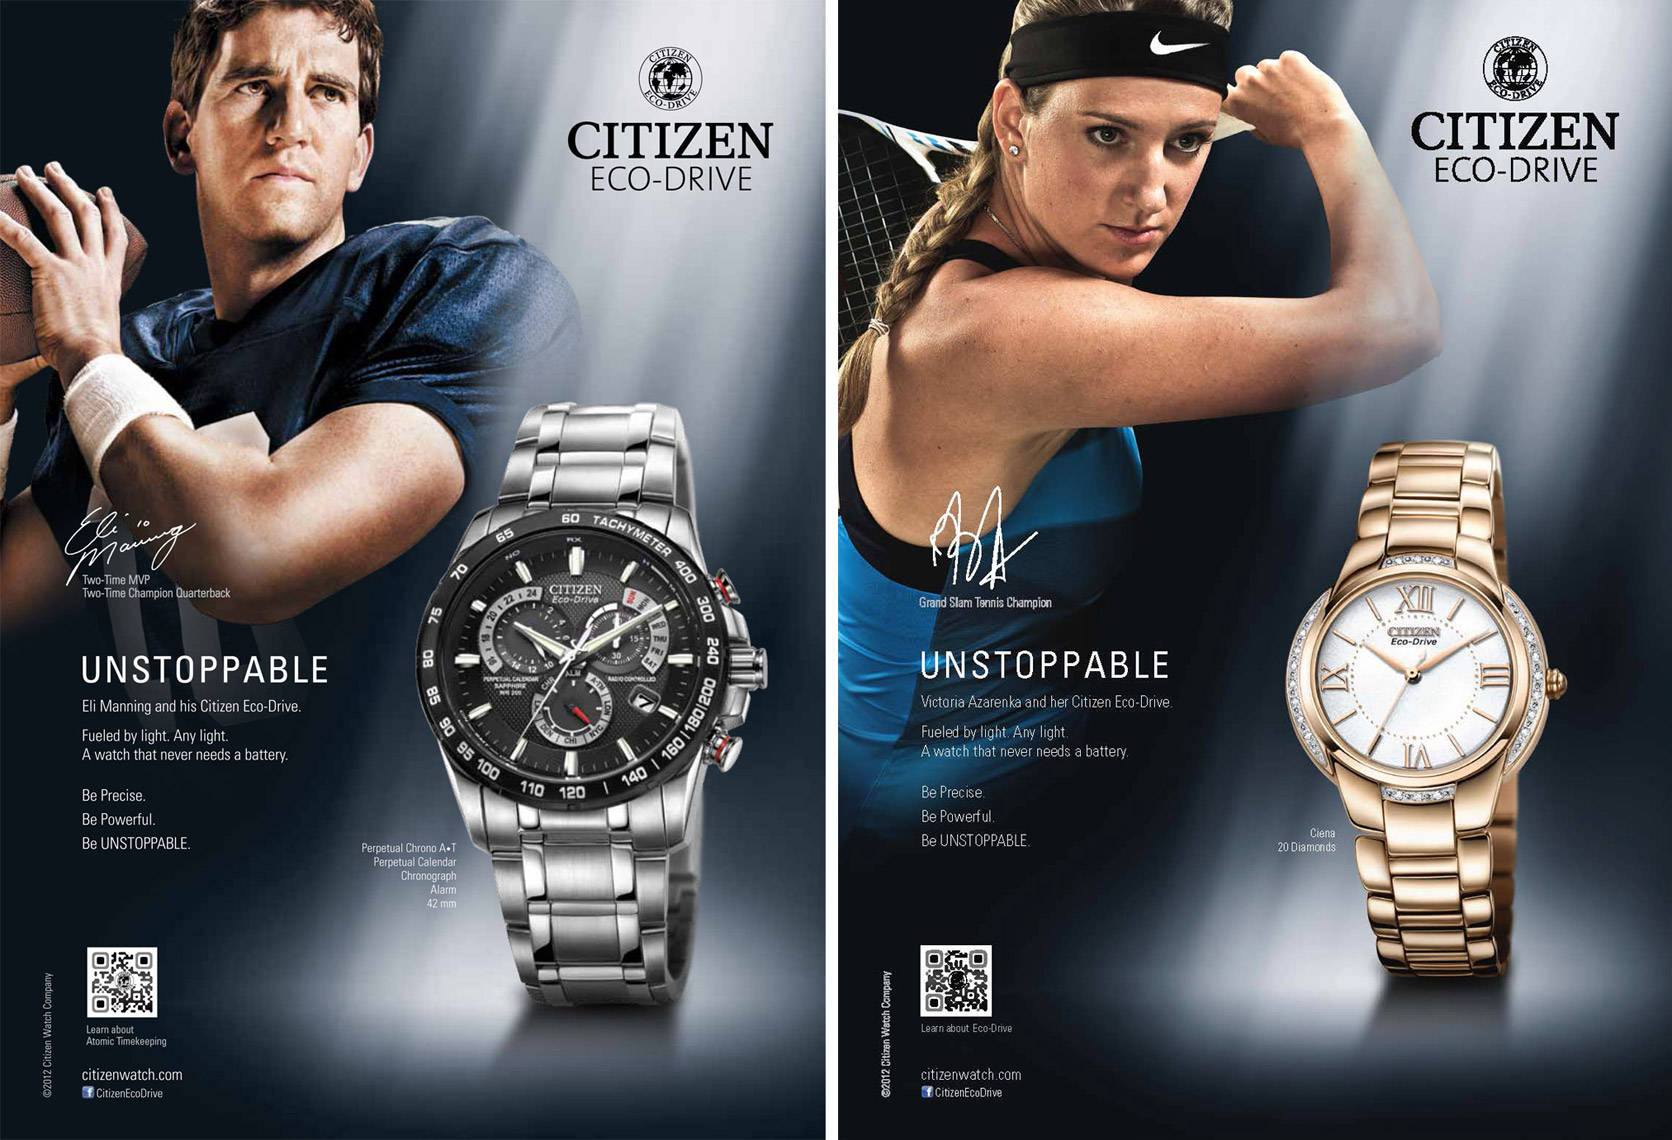 Advertising watch photography  - Citizen Unstoppable Ad Campaign Eli Manning & Victoria Azarenka